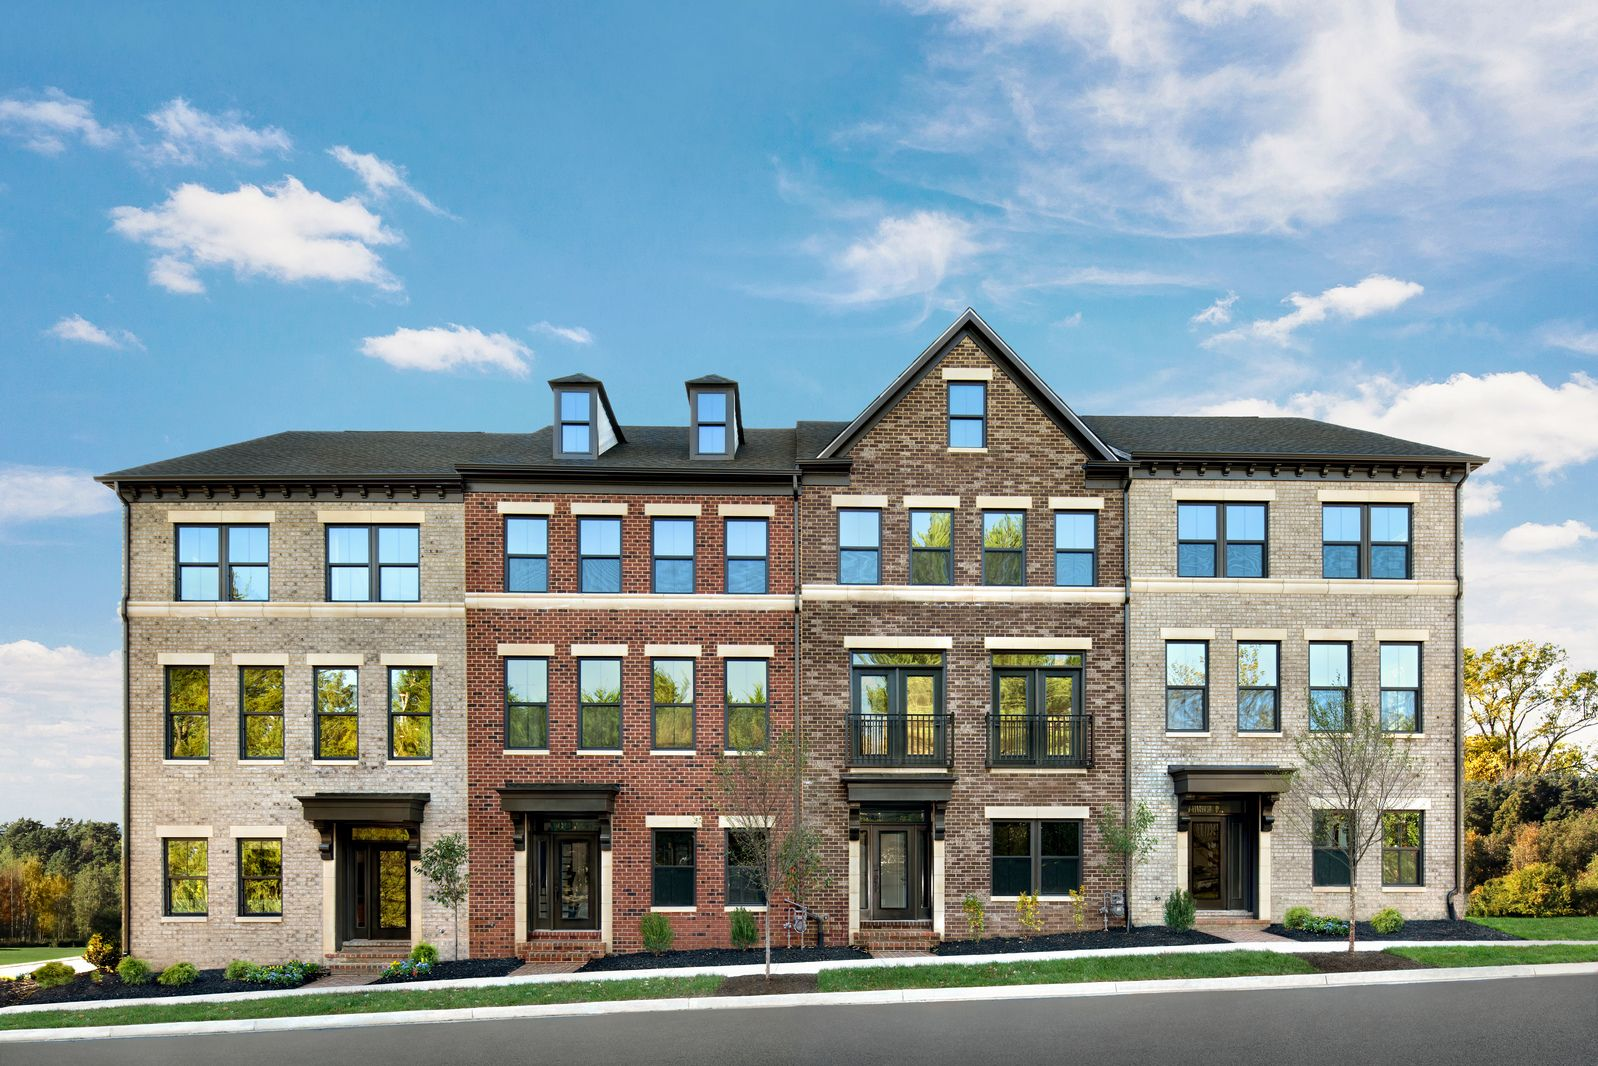 GRAND TOWNHOMES UP TO 5 BEDROOMS